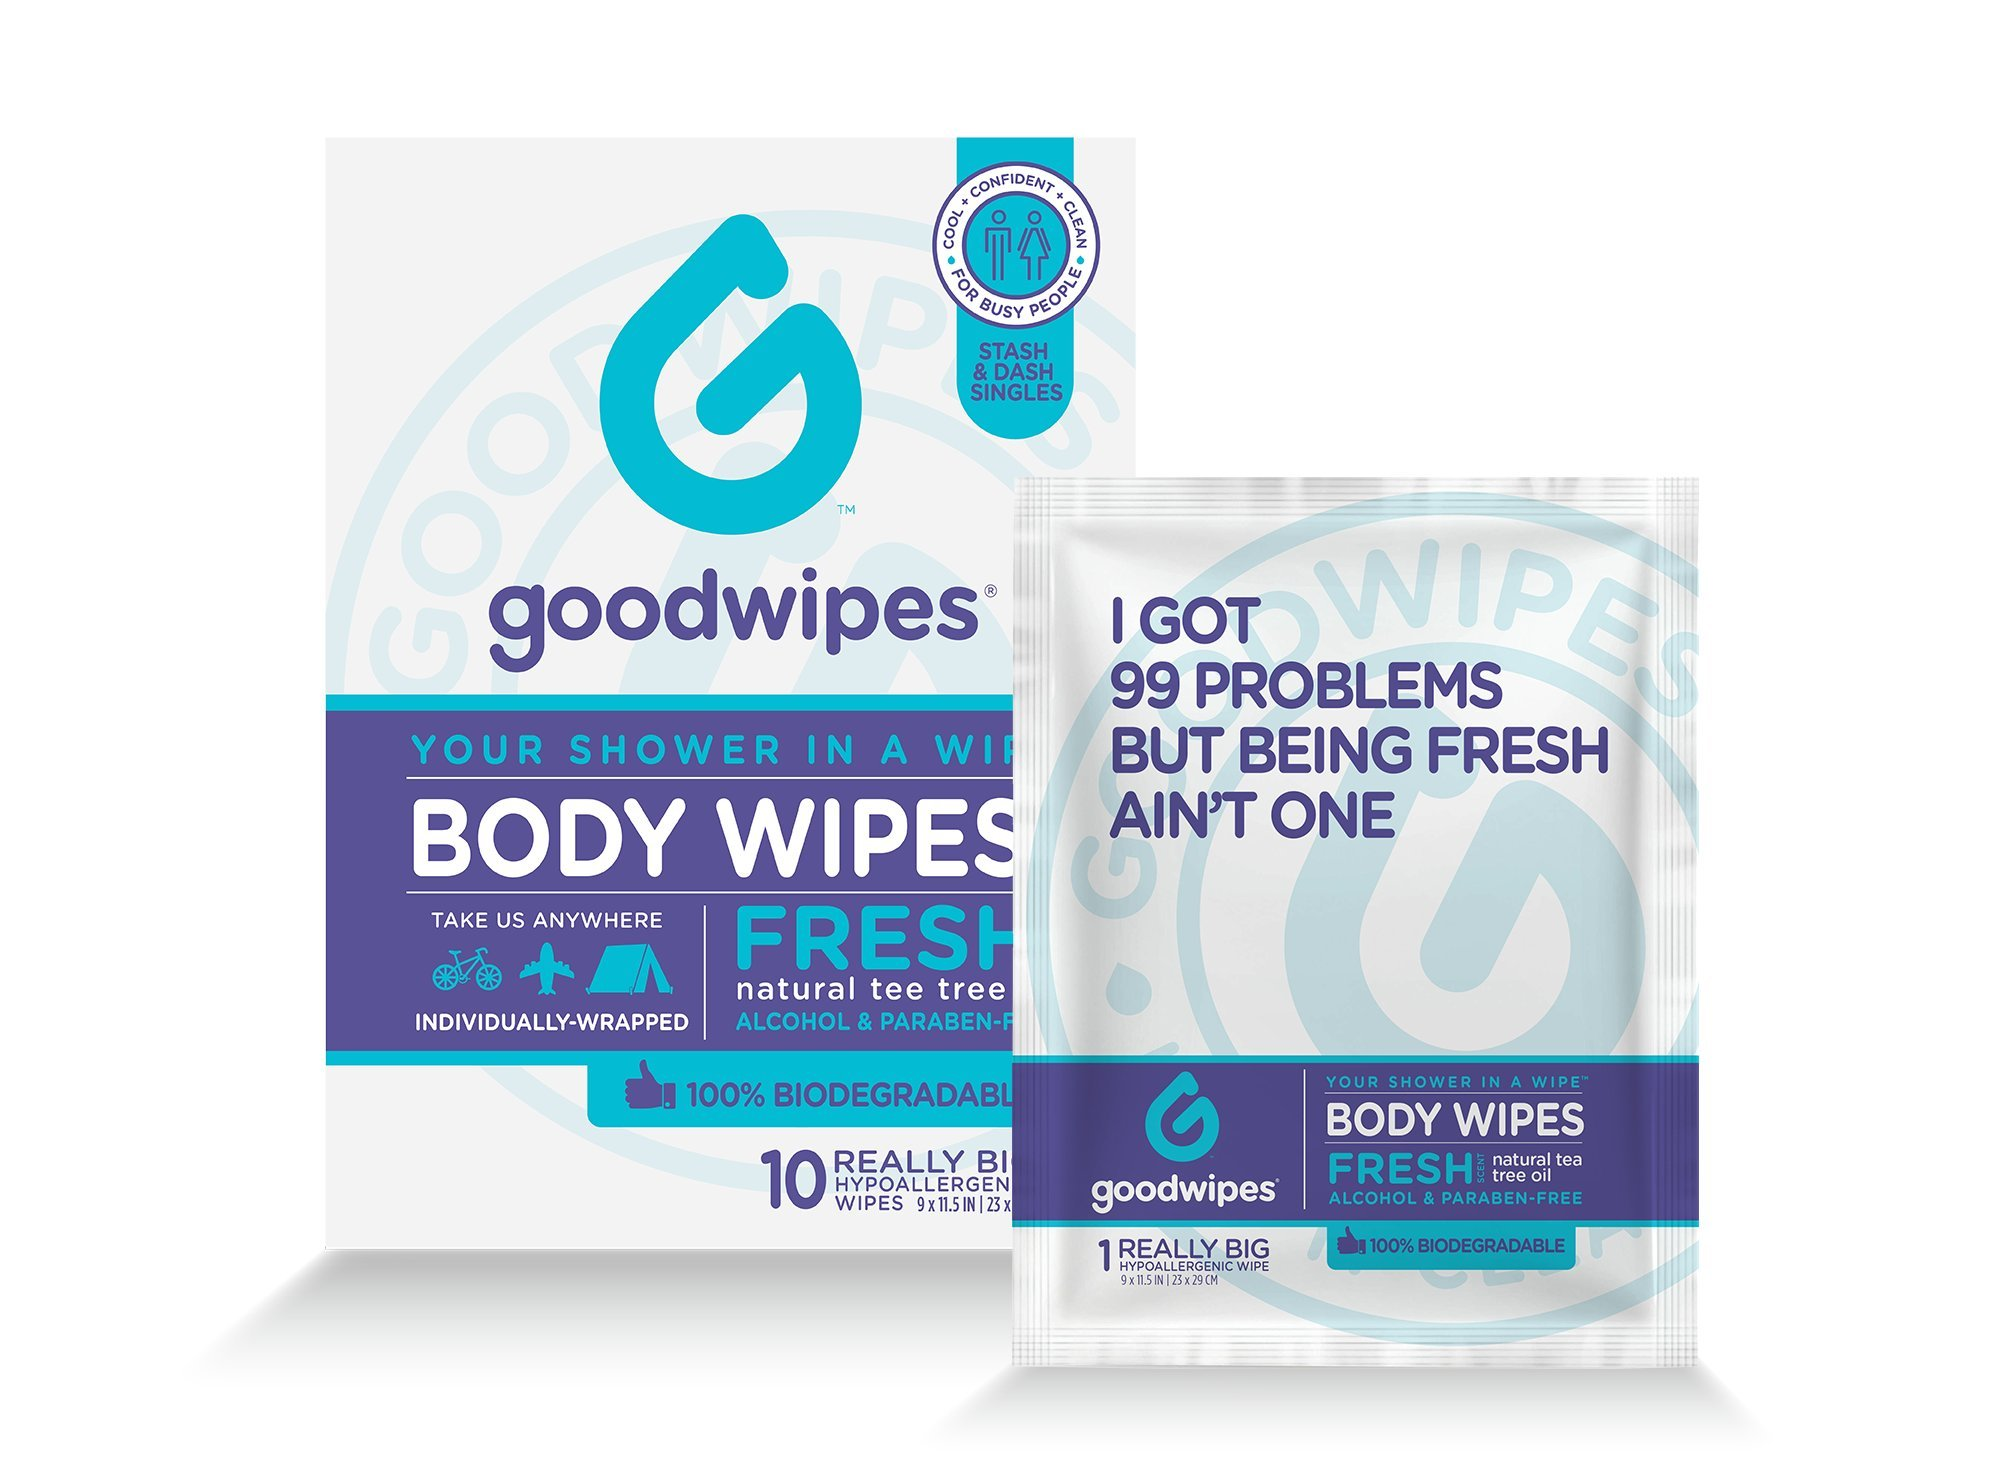 Goodwipes Hygiene Wipes for When You Can't Shower, Hypoallergenic, Really Big Body Wipes with Natural Tea Tree Oil and Cooling Peppermint, Stash-and-Dash Singles for Travel, Pack of 10